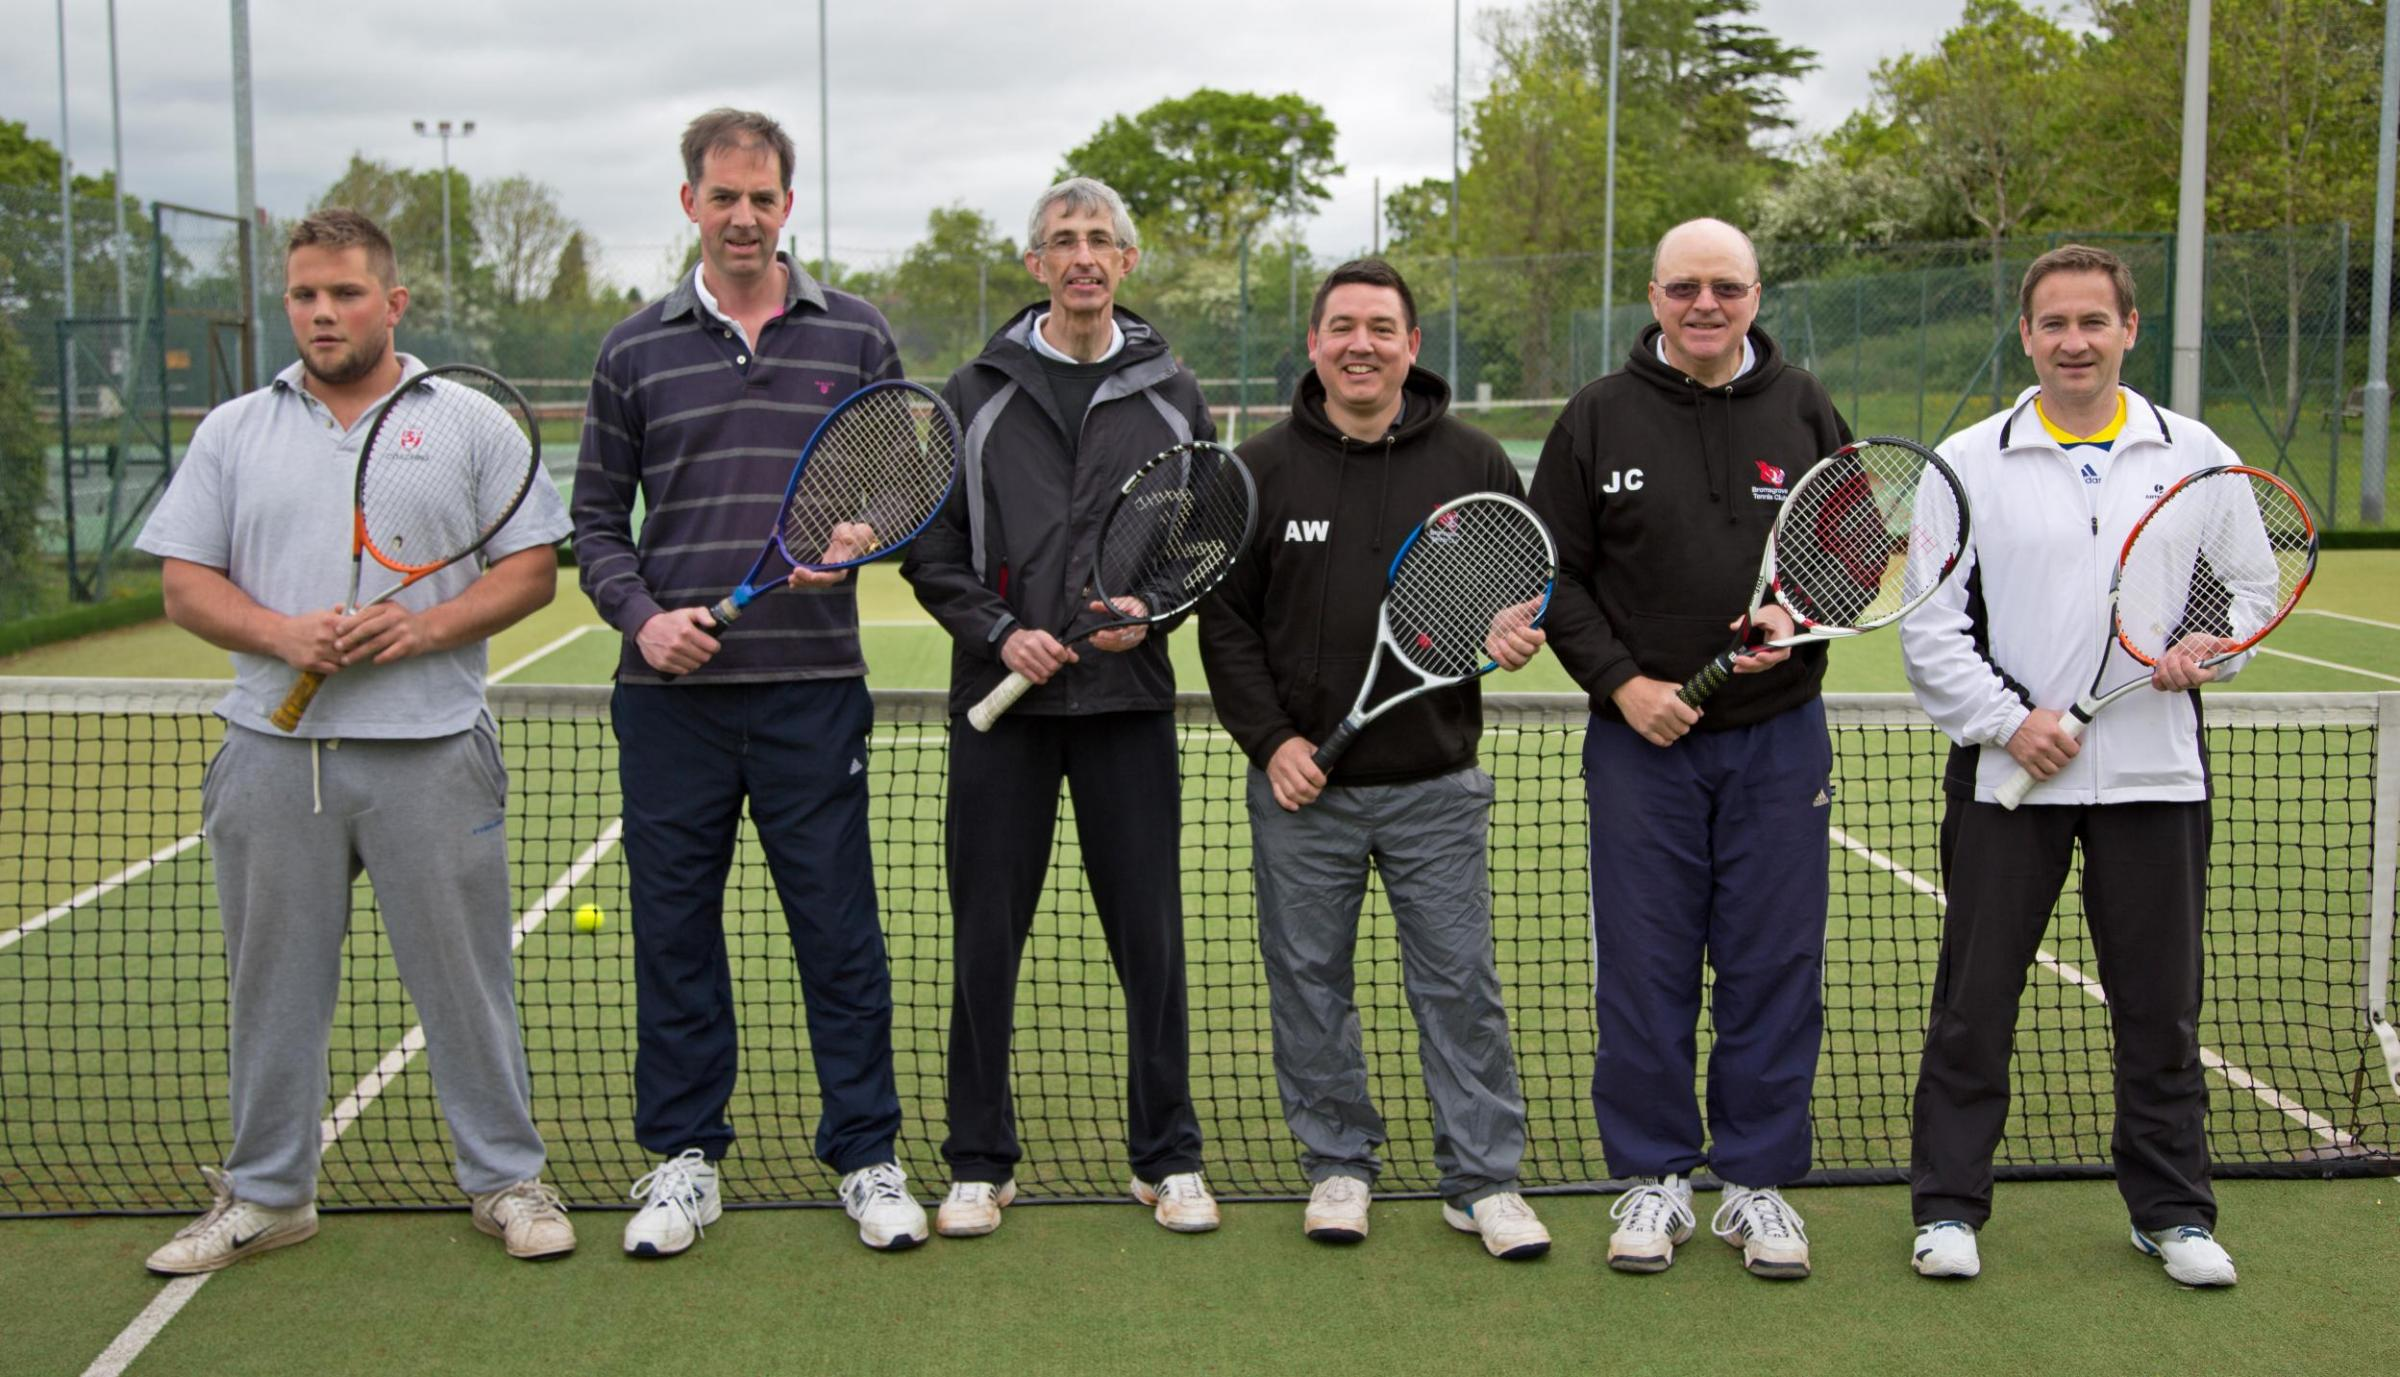 Court queens: Bromsgrove Ladies C team of Sue Murray, Ros Cooke, Lesley Hodson, Anne Simper, Lisa Rushton and